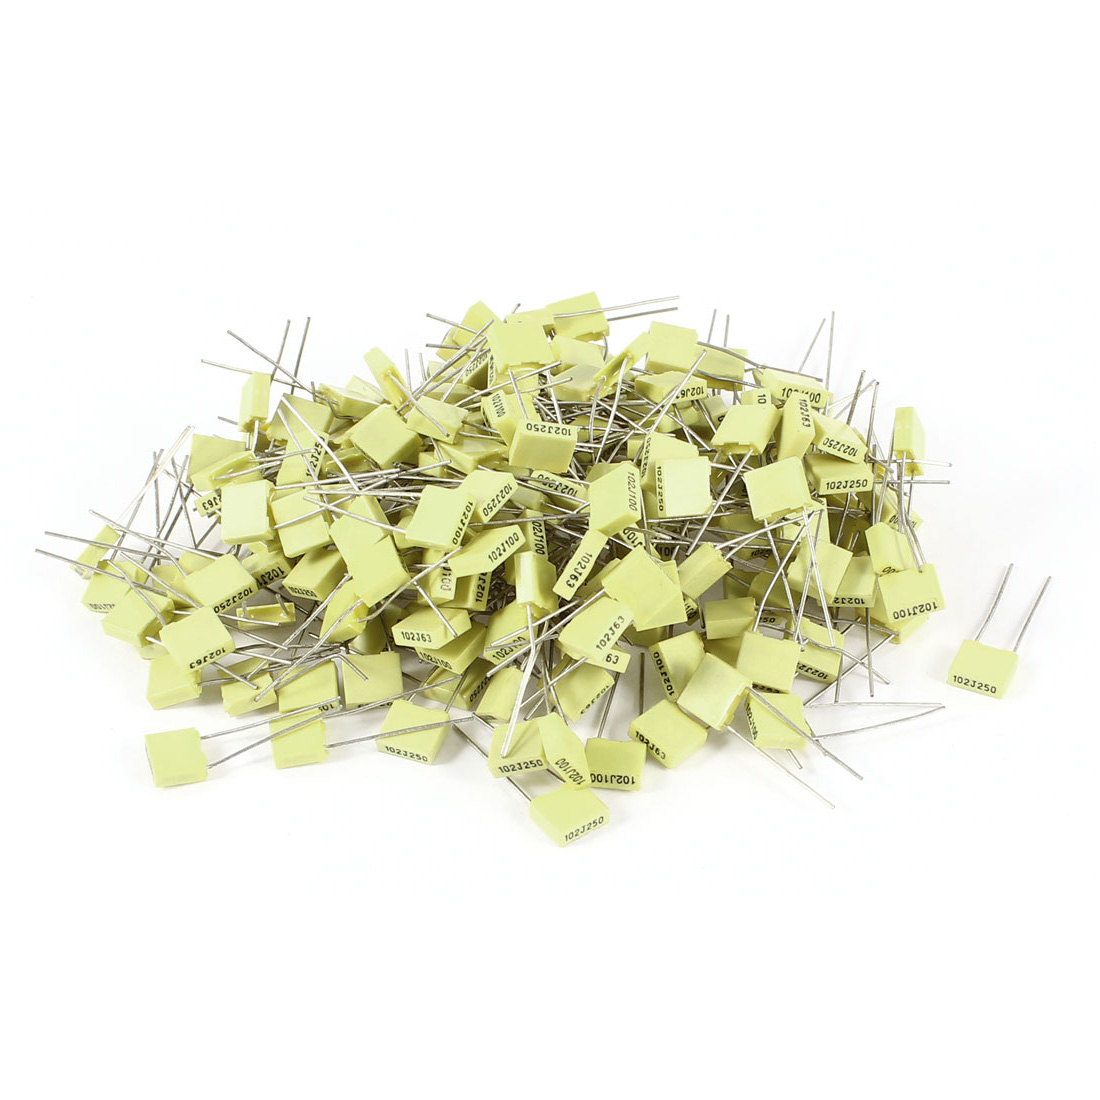 200 Pieces 100V 1NF Metal Radial Lead Box Type Film Correction Capacitors Yellow